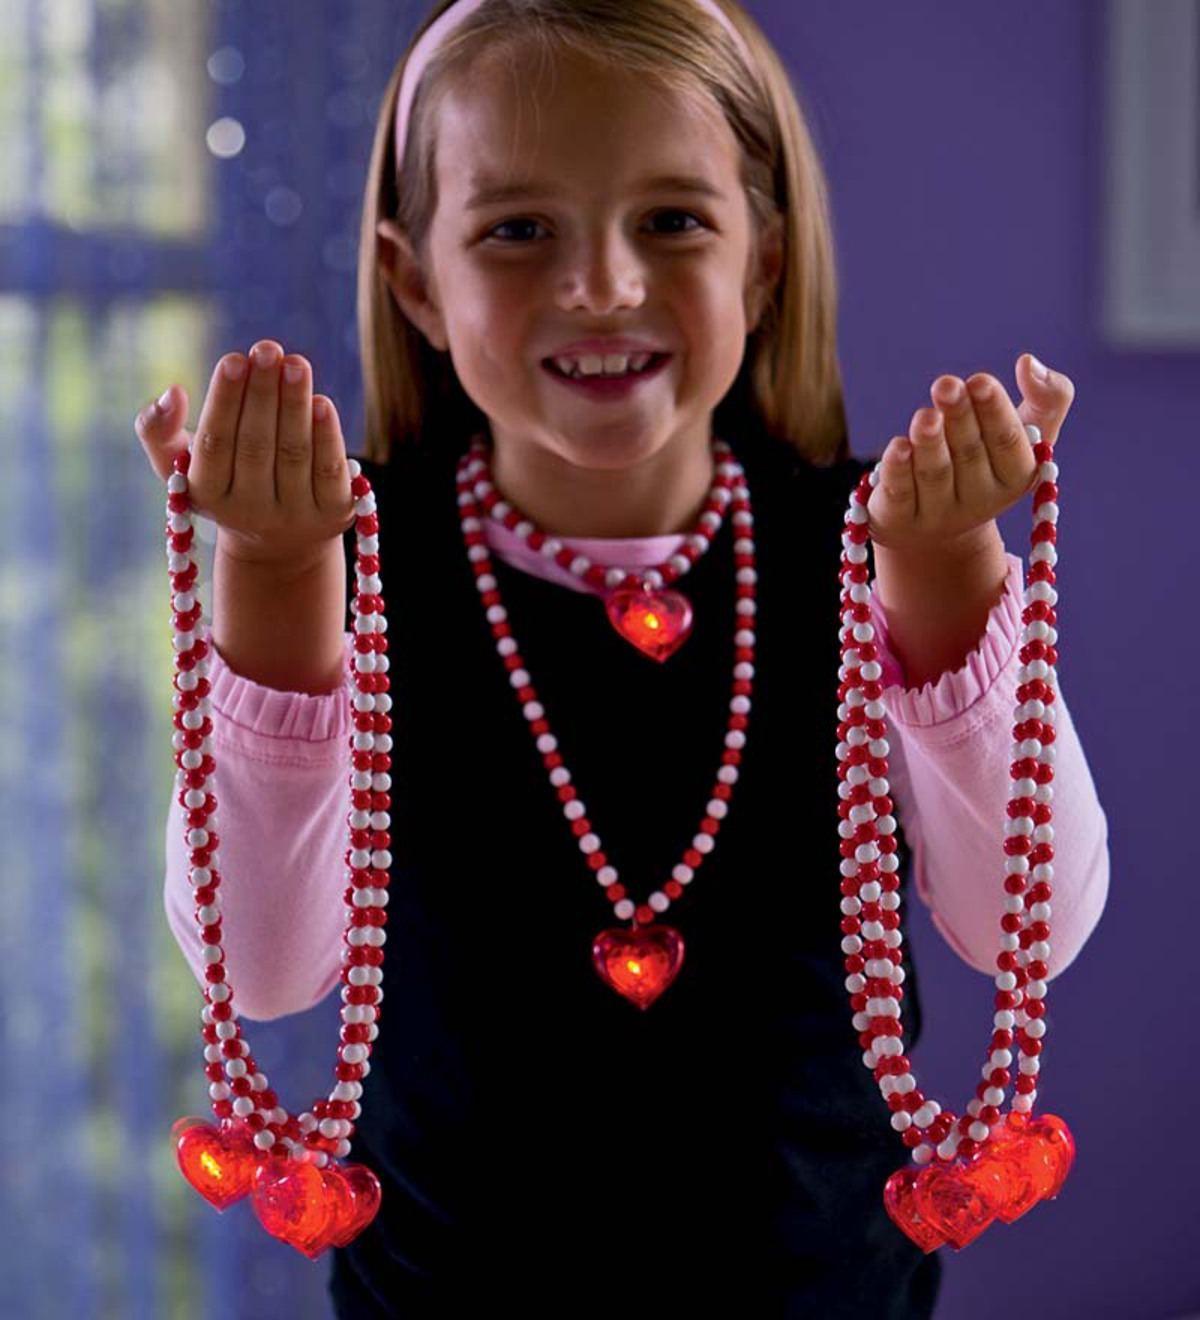 Set of 10 Light-Up Heart Necklaces